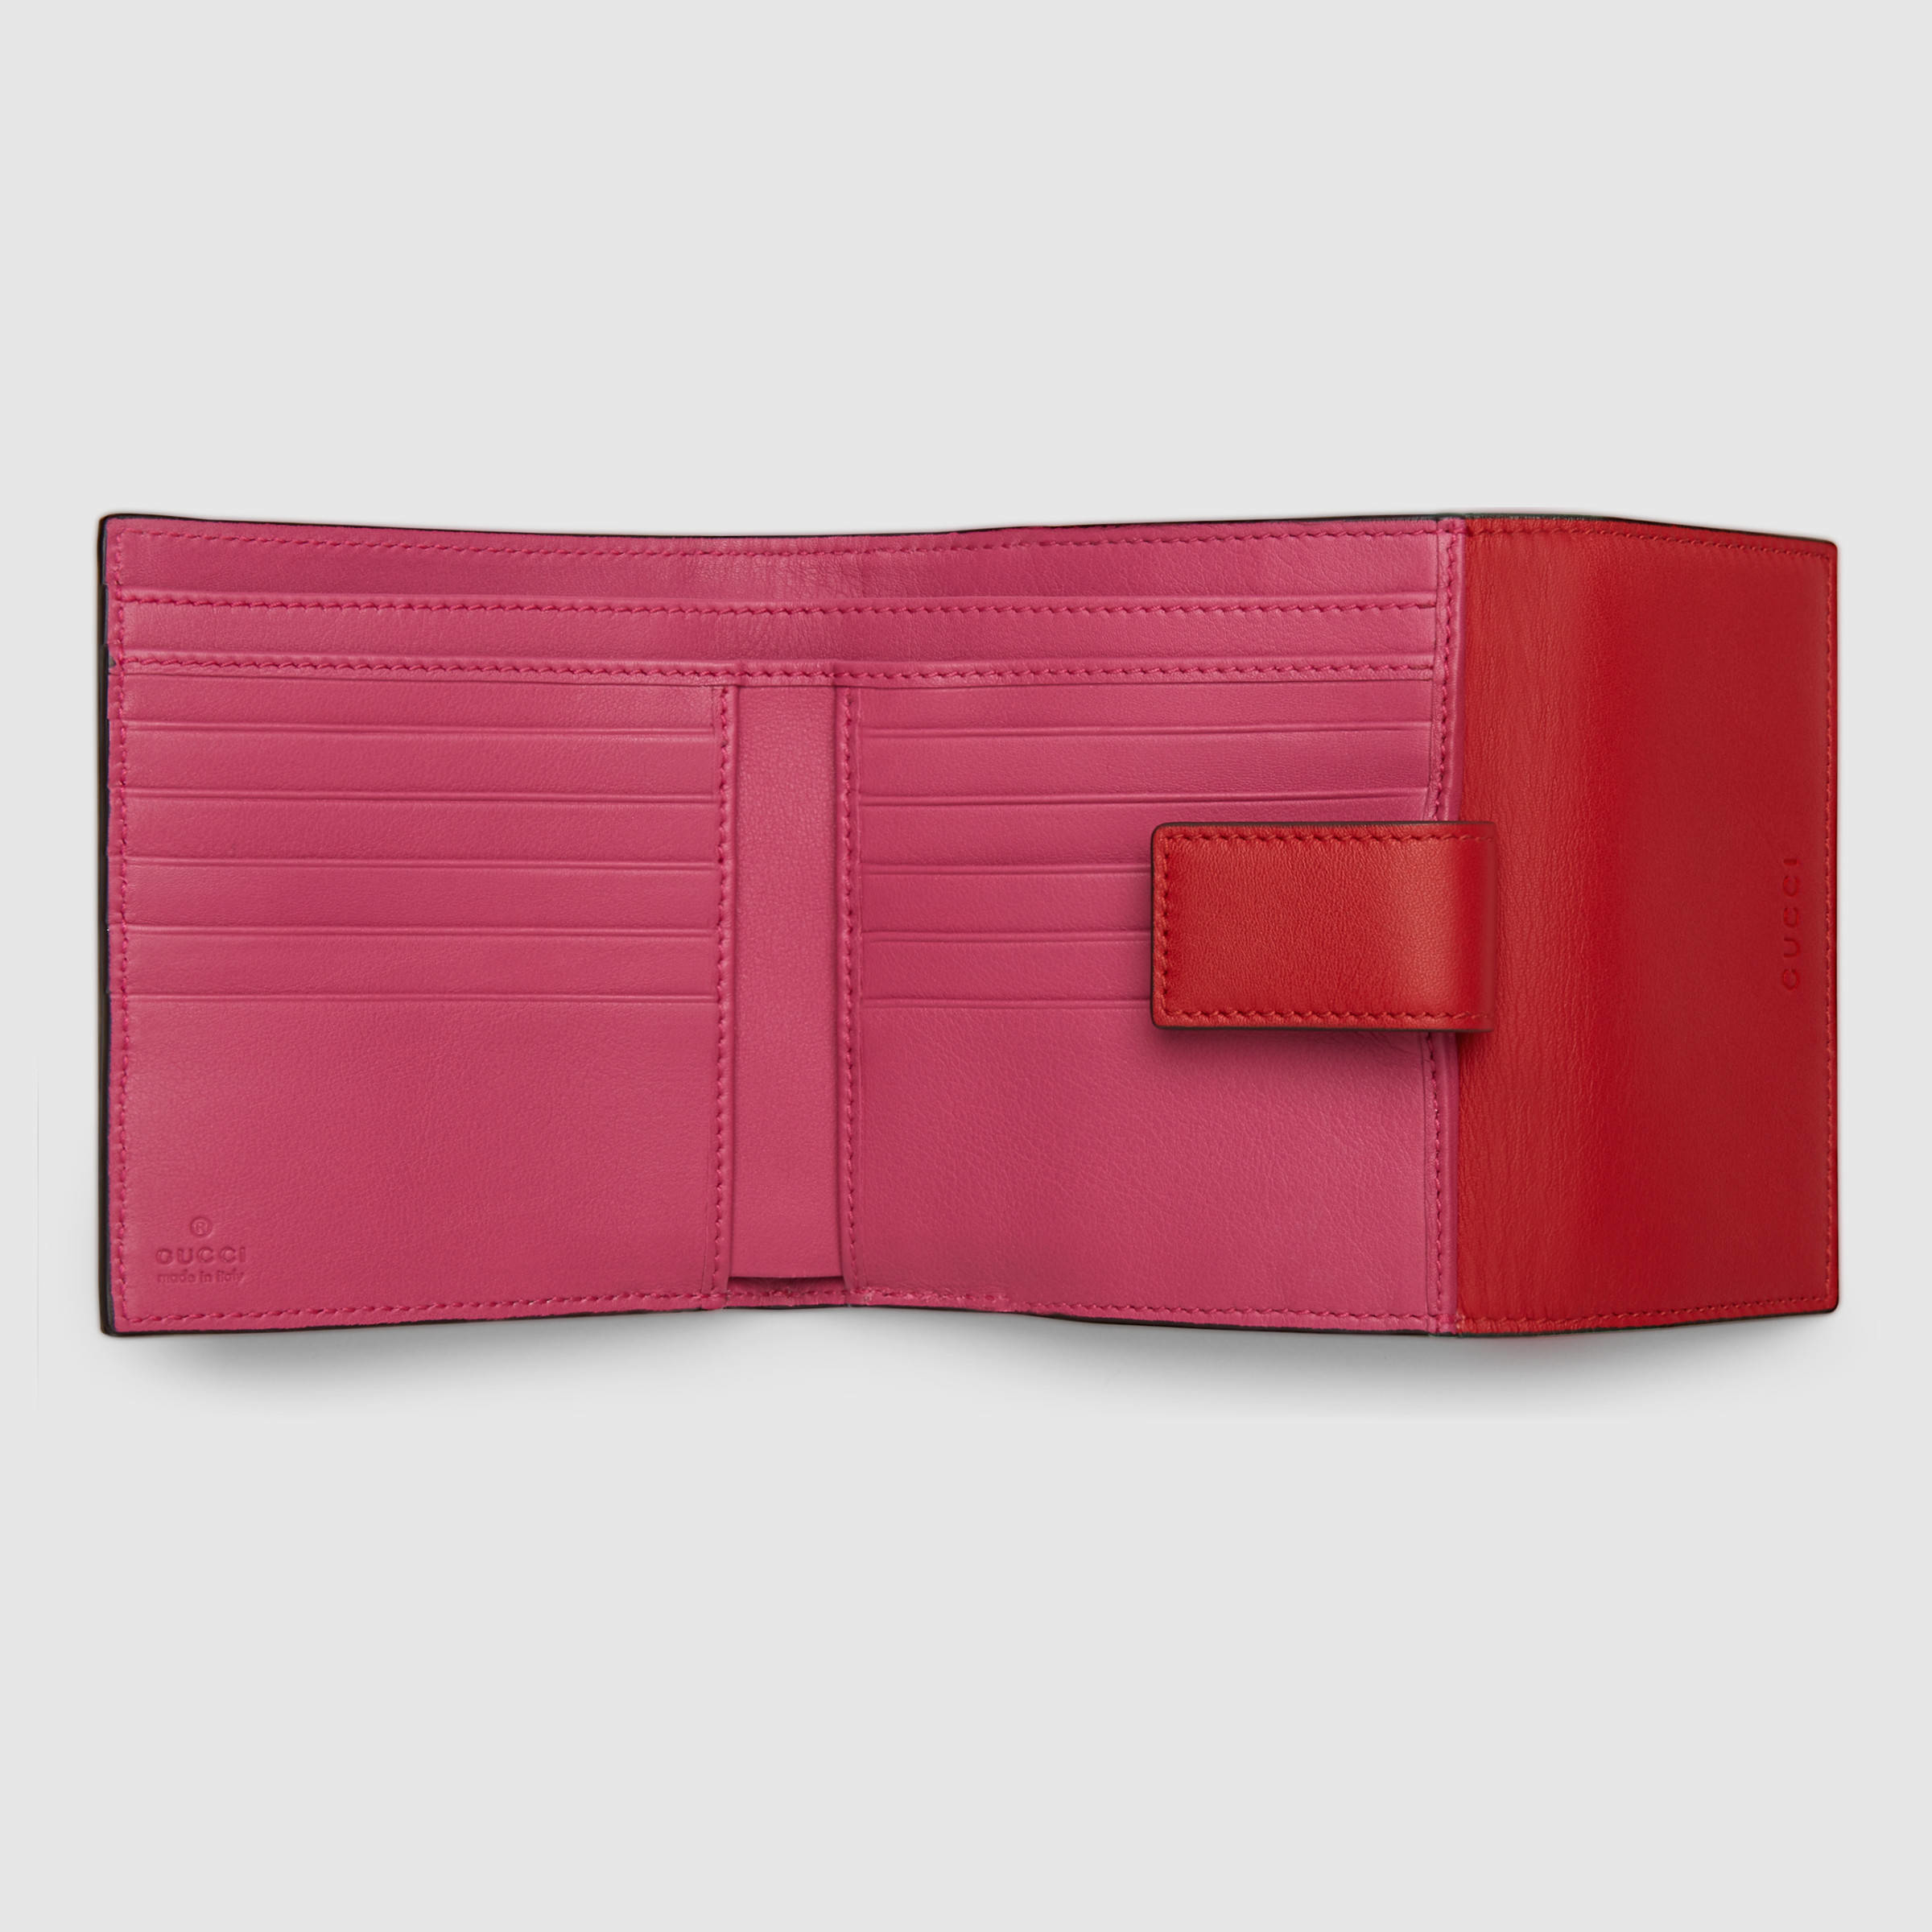 22c8fc61b76 Lyst - Gucci Gg Supreme French Flap Wallet in Red